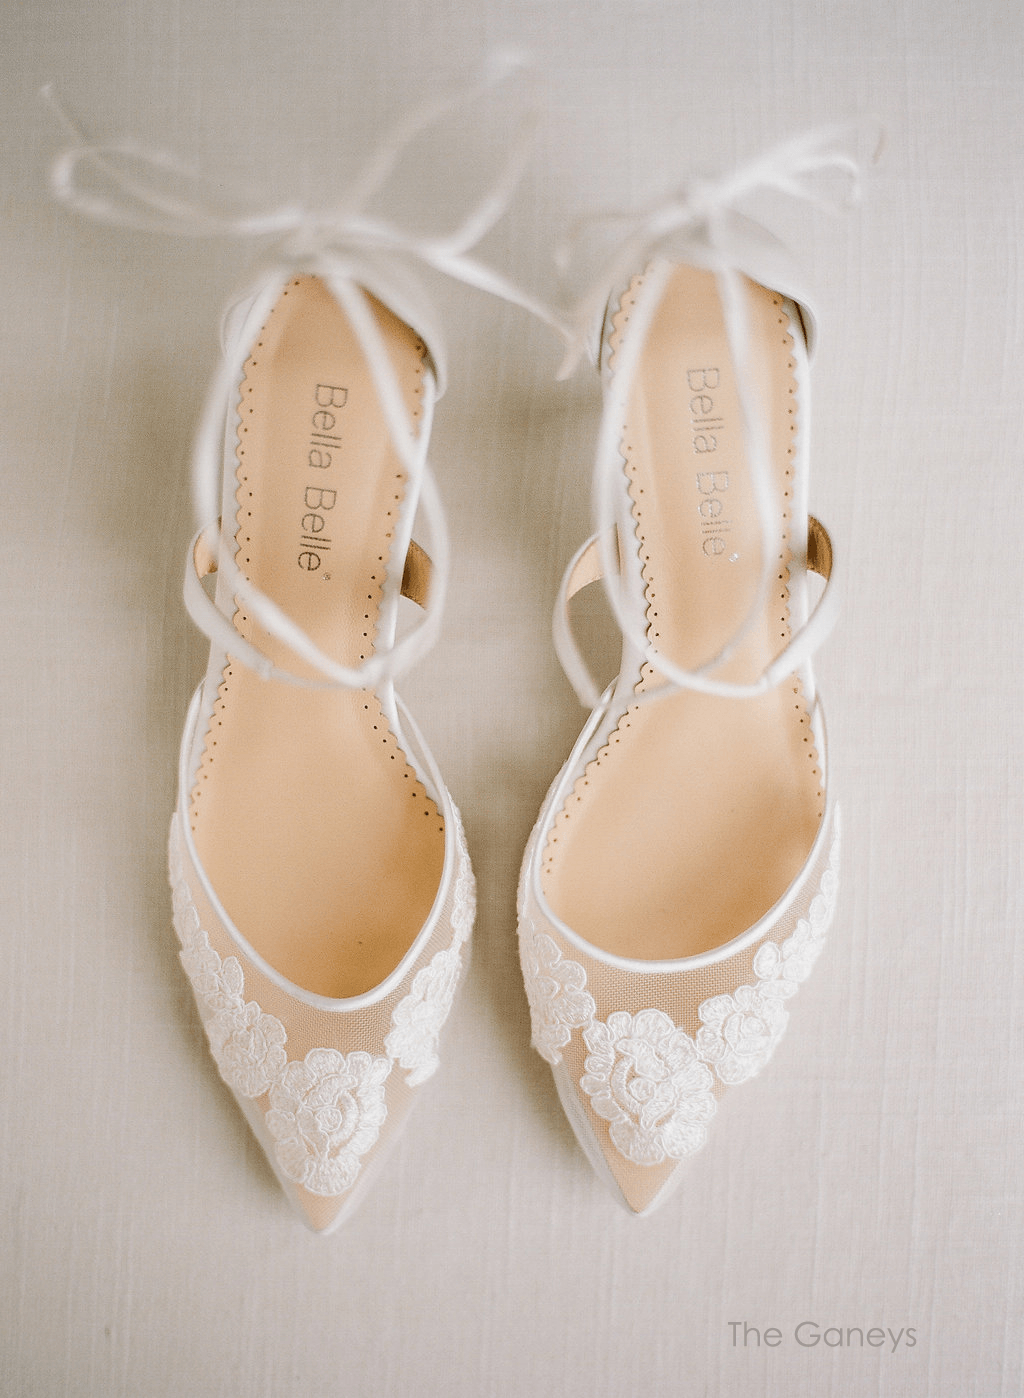 Kitten Heel Lace Wedding Shoes Wedding Shoes Heels Wedding Shoes Low Heel Wedding Shoes Lace